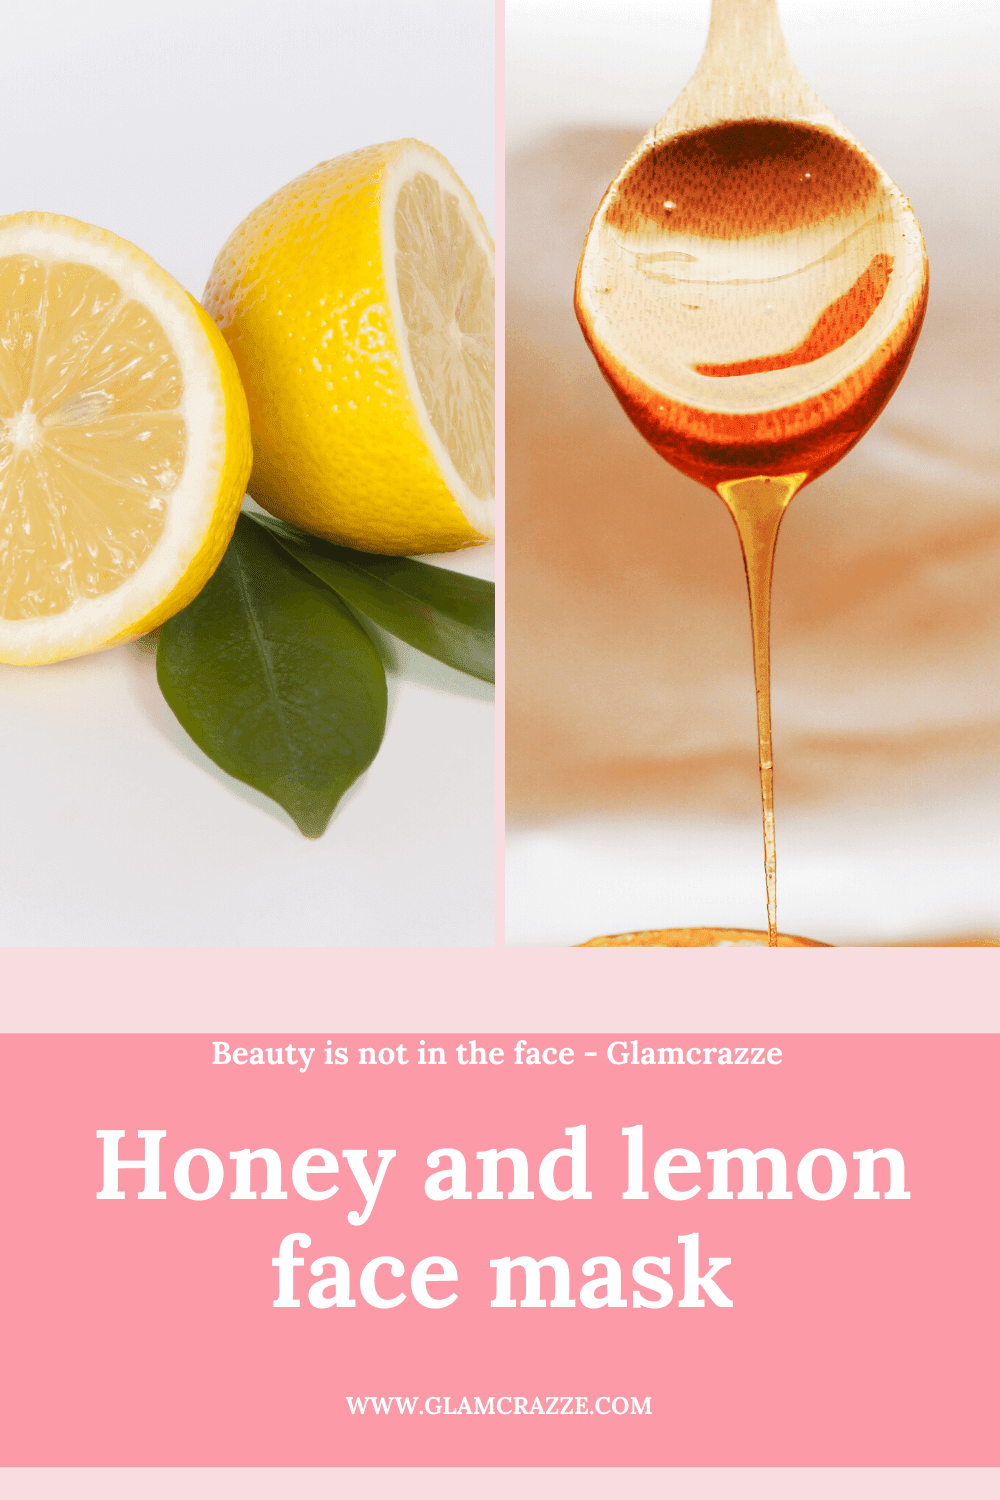 homemade face pack for instant glow and fairness using lemon and honey